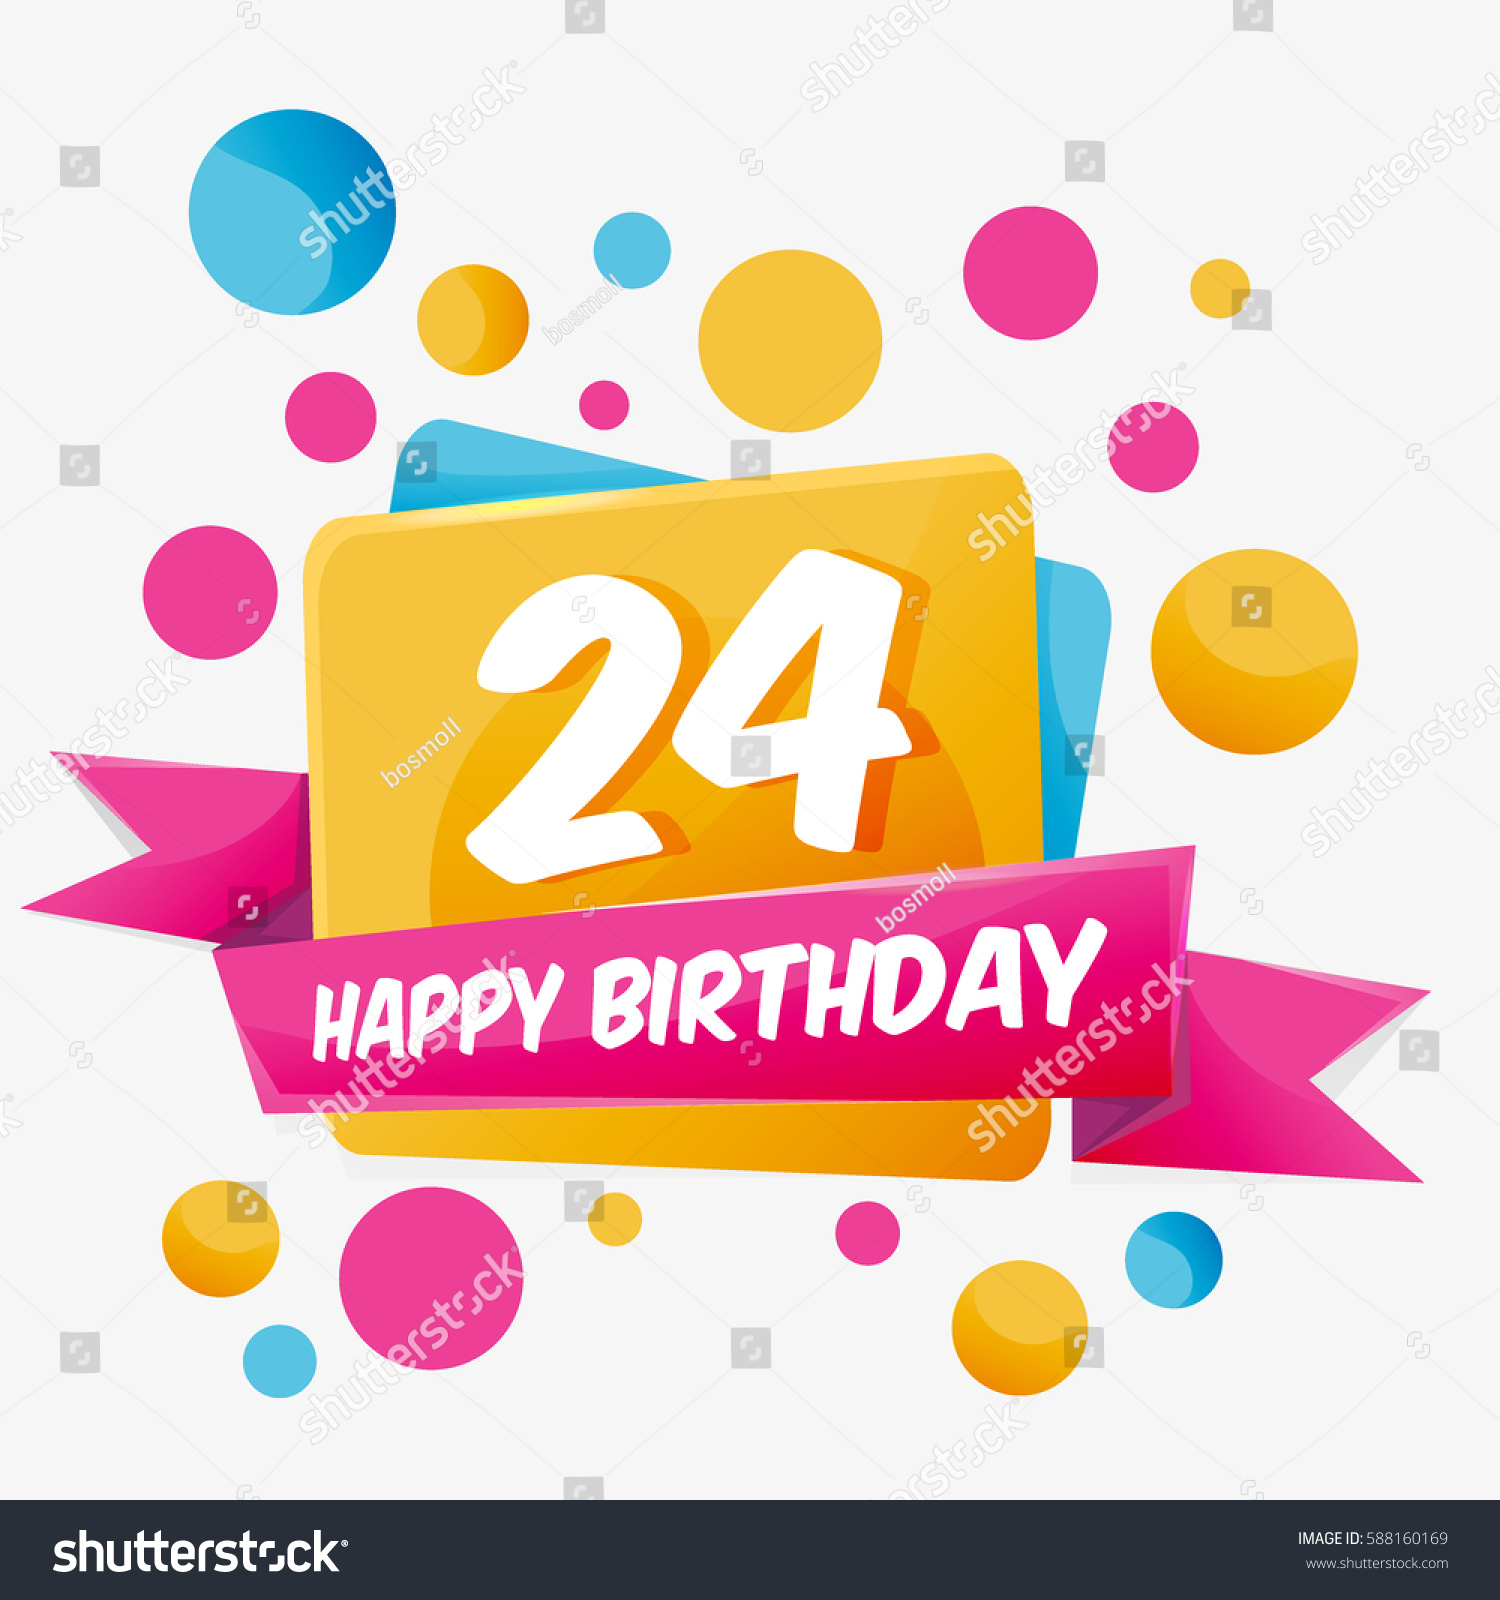 Happy 24 Happy Birthday Vector Card 24 Year Stock Vector 588160169